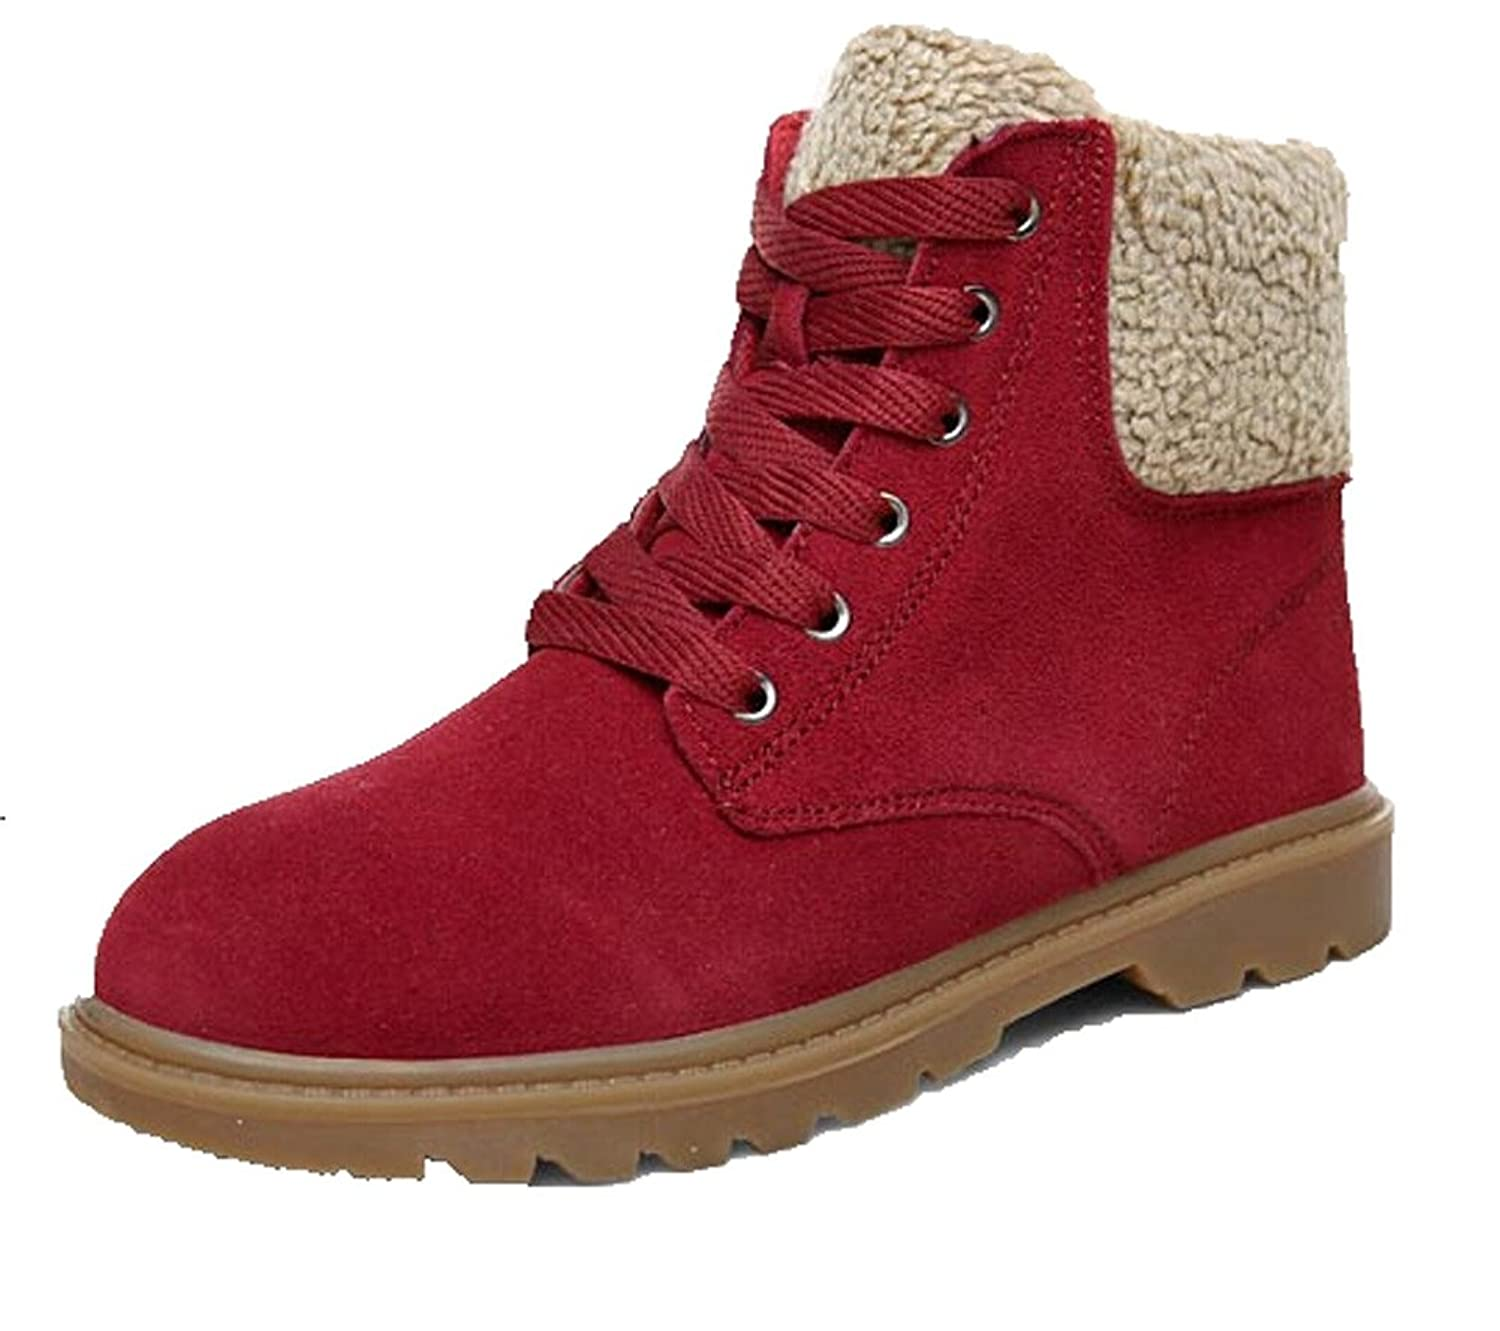 Women's 100% Genuine Leather Lace up Martin Snow Boot